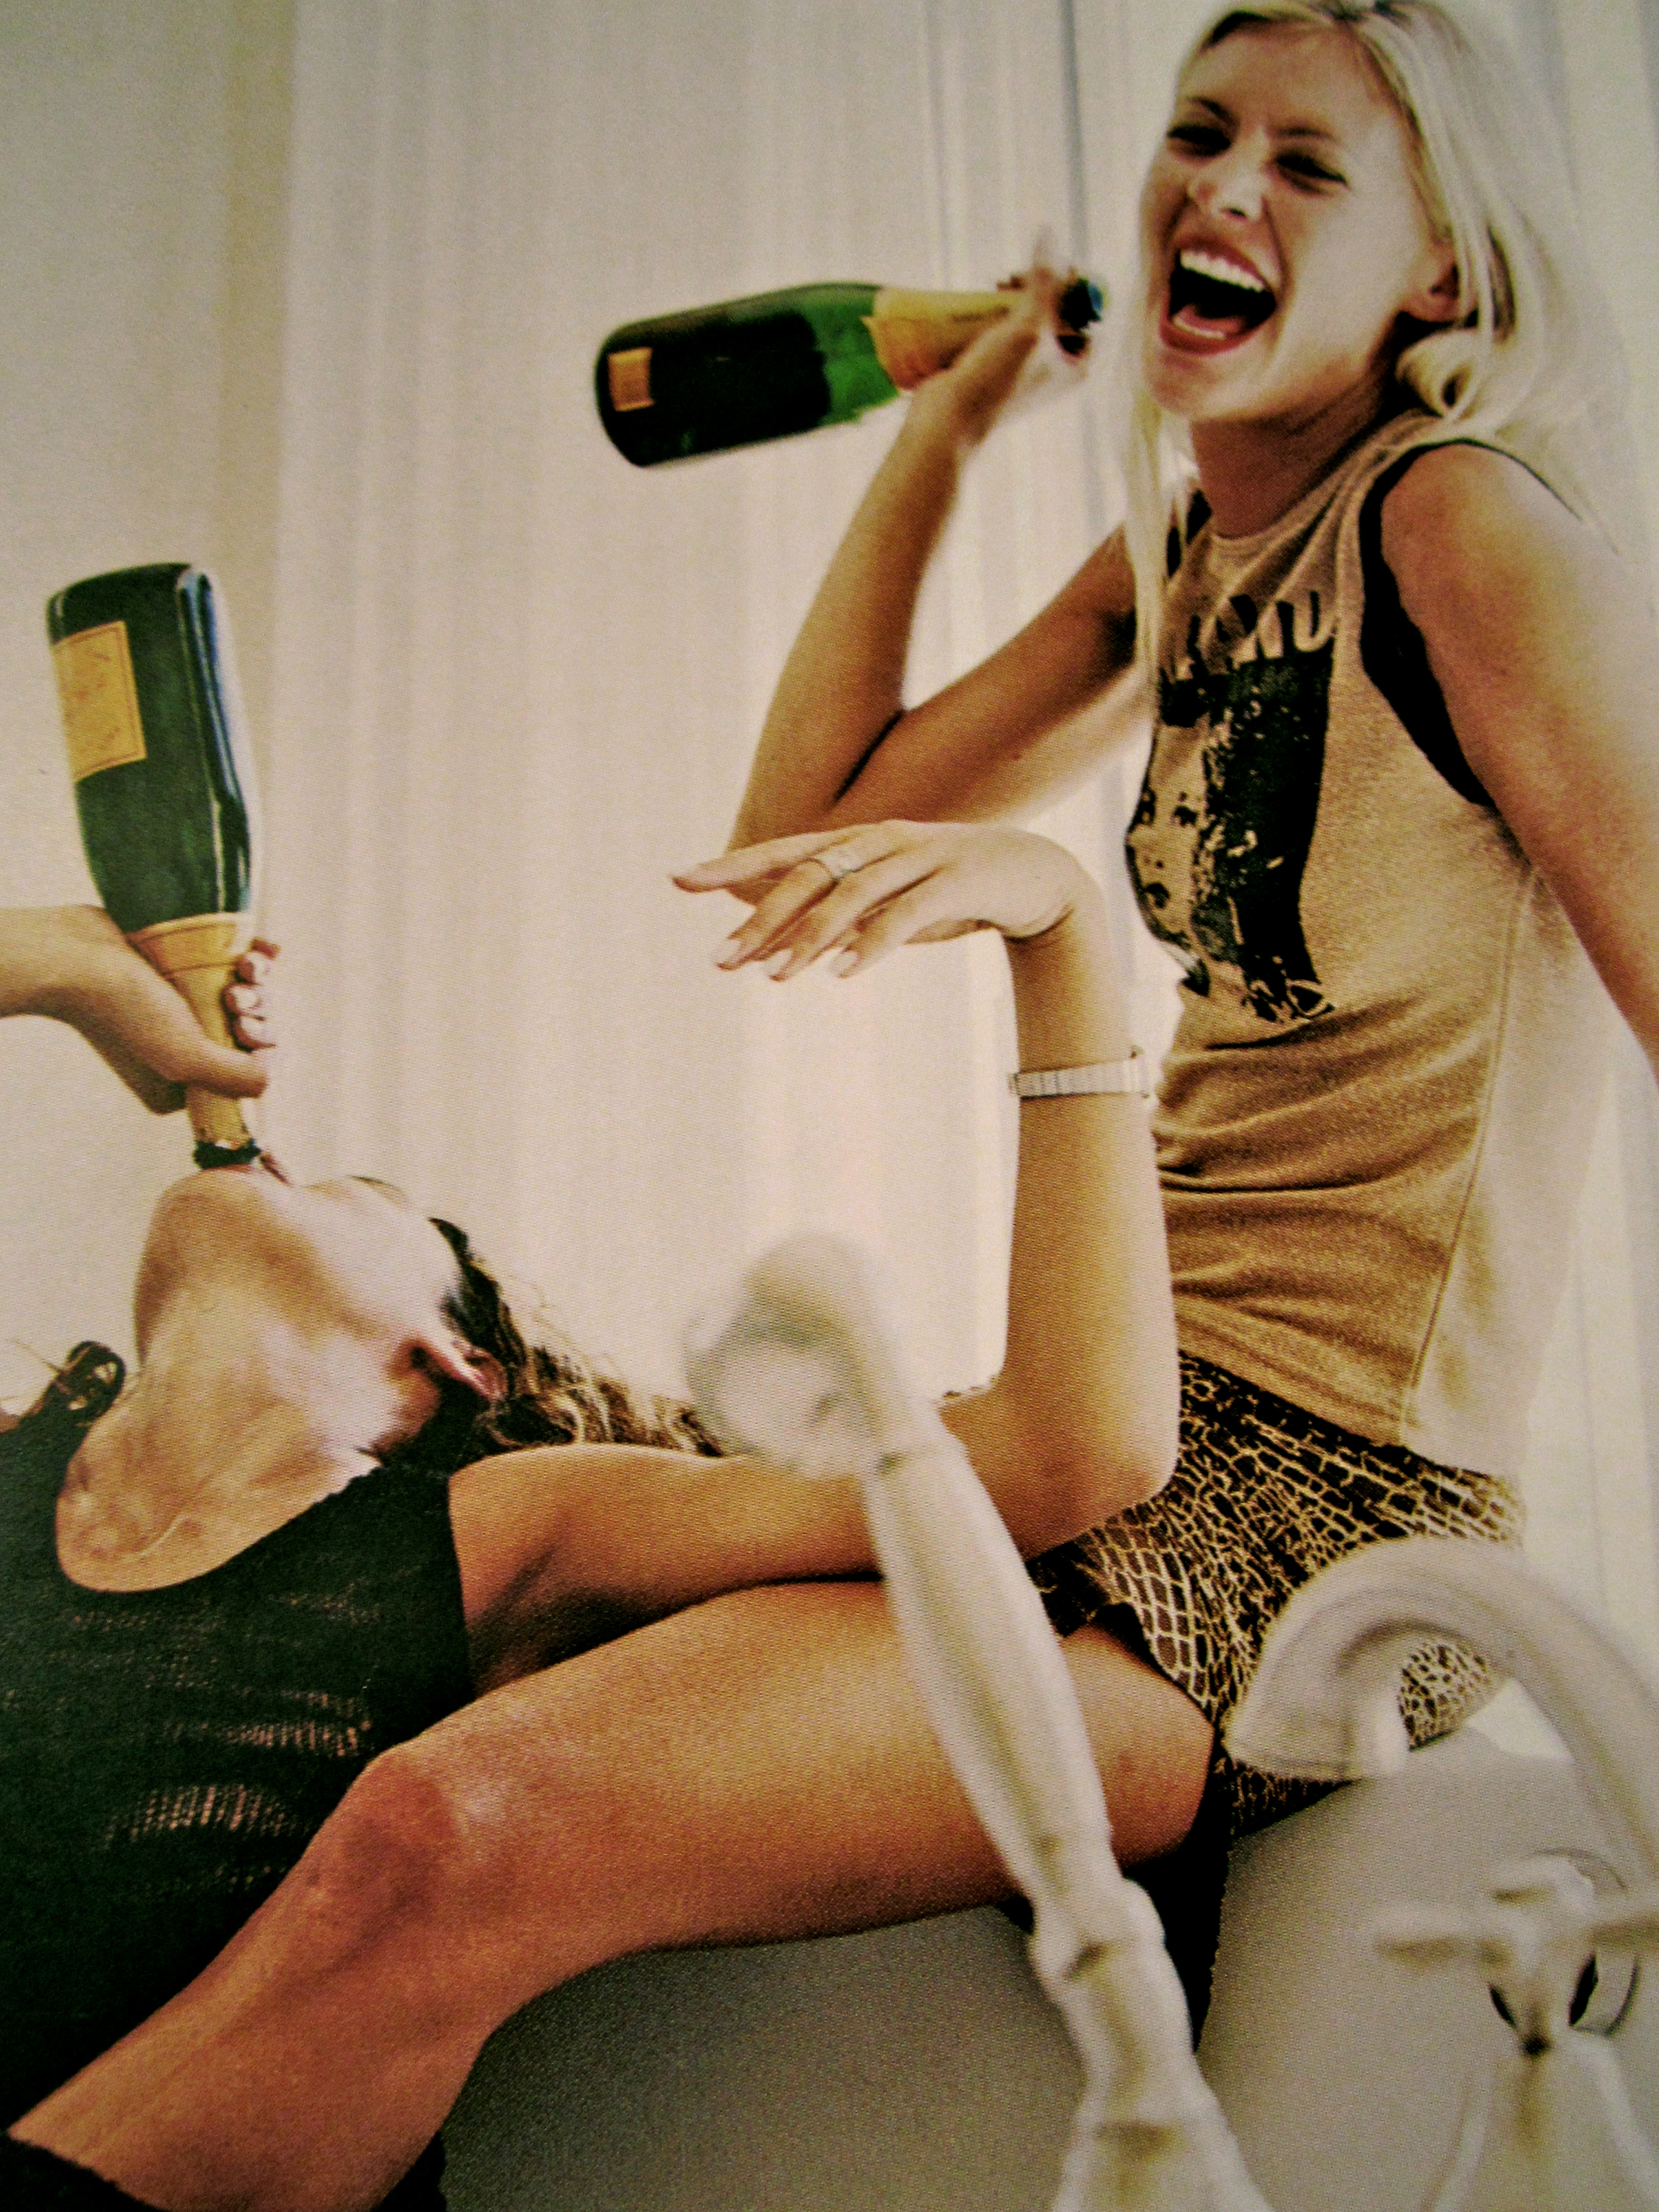 aaa76f2a7193 champagne, rich and happy life. Moments with My Bbf ...kinda feel like this  ; ) ....Friends <3